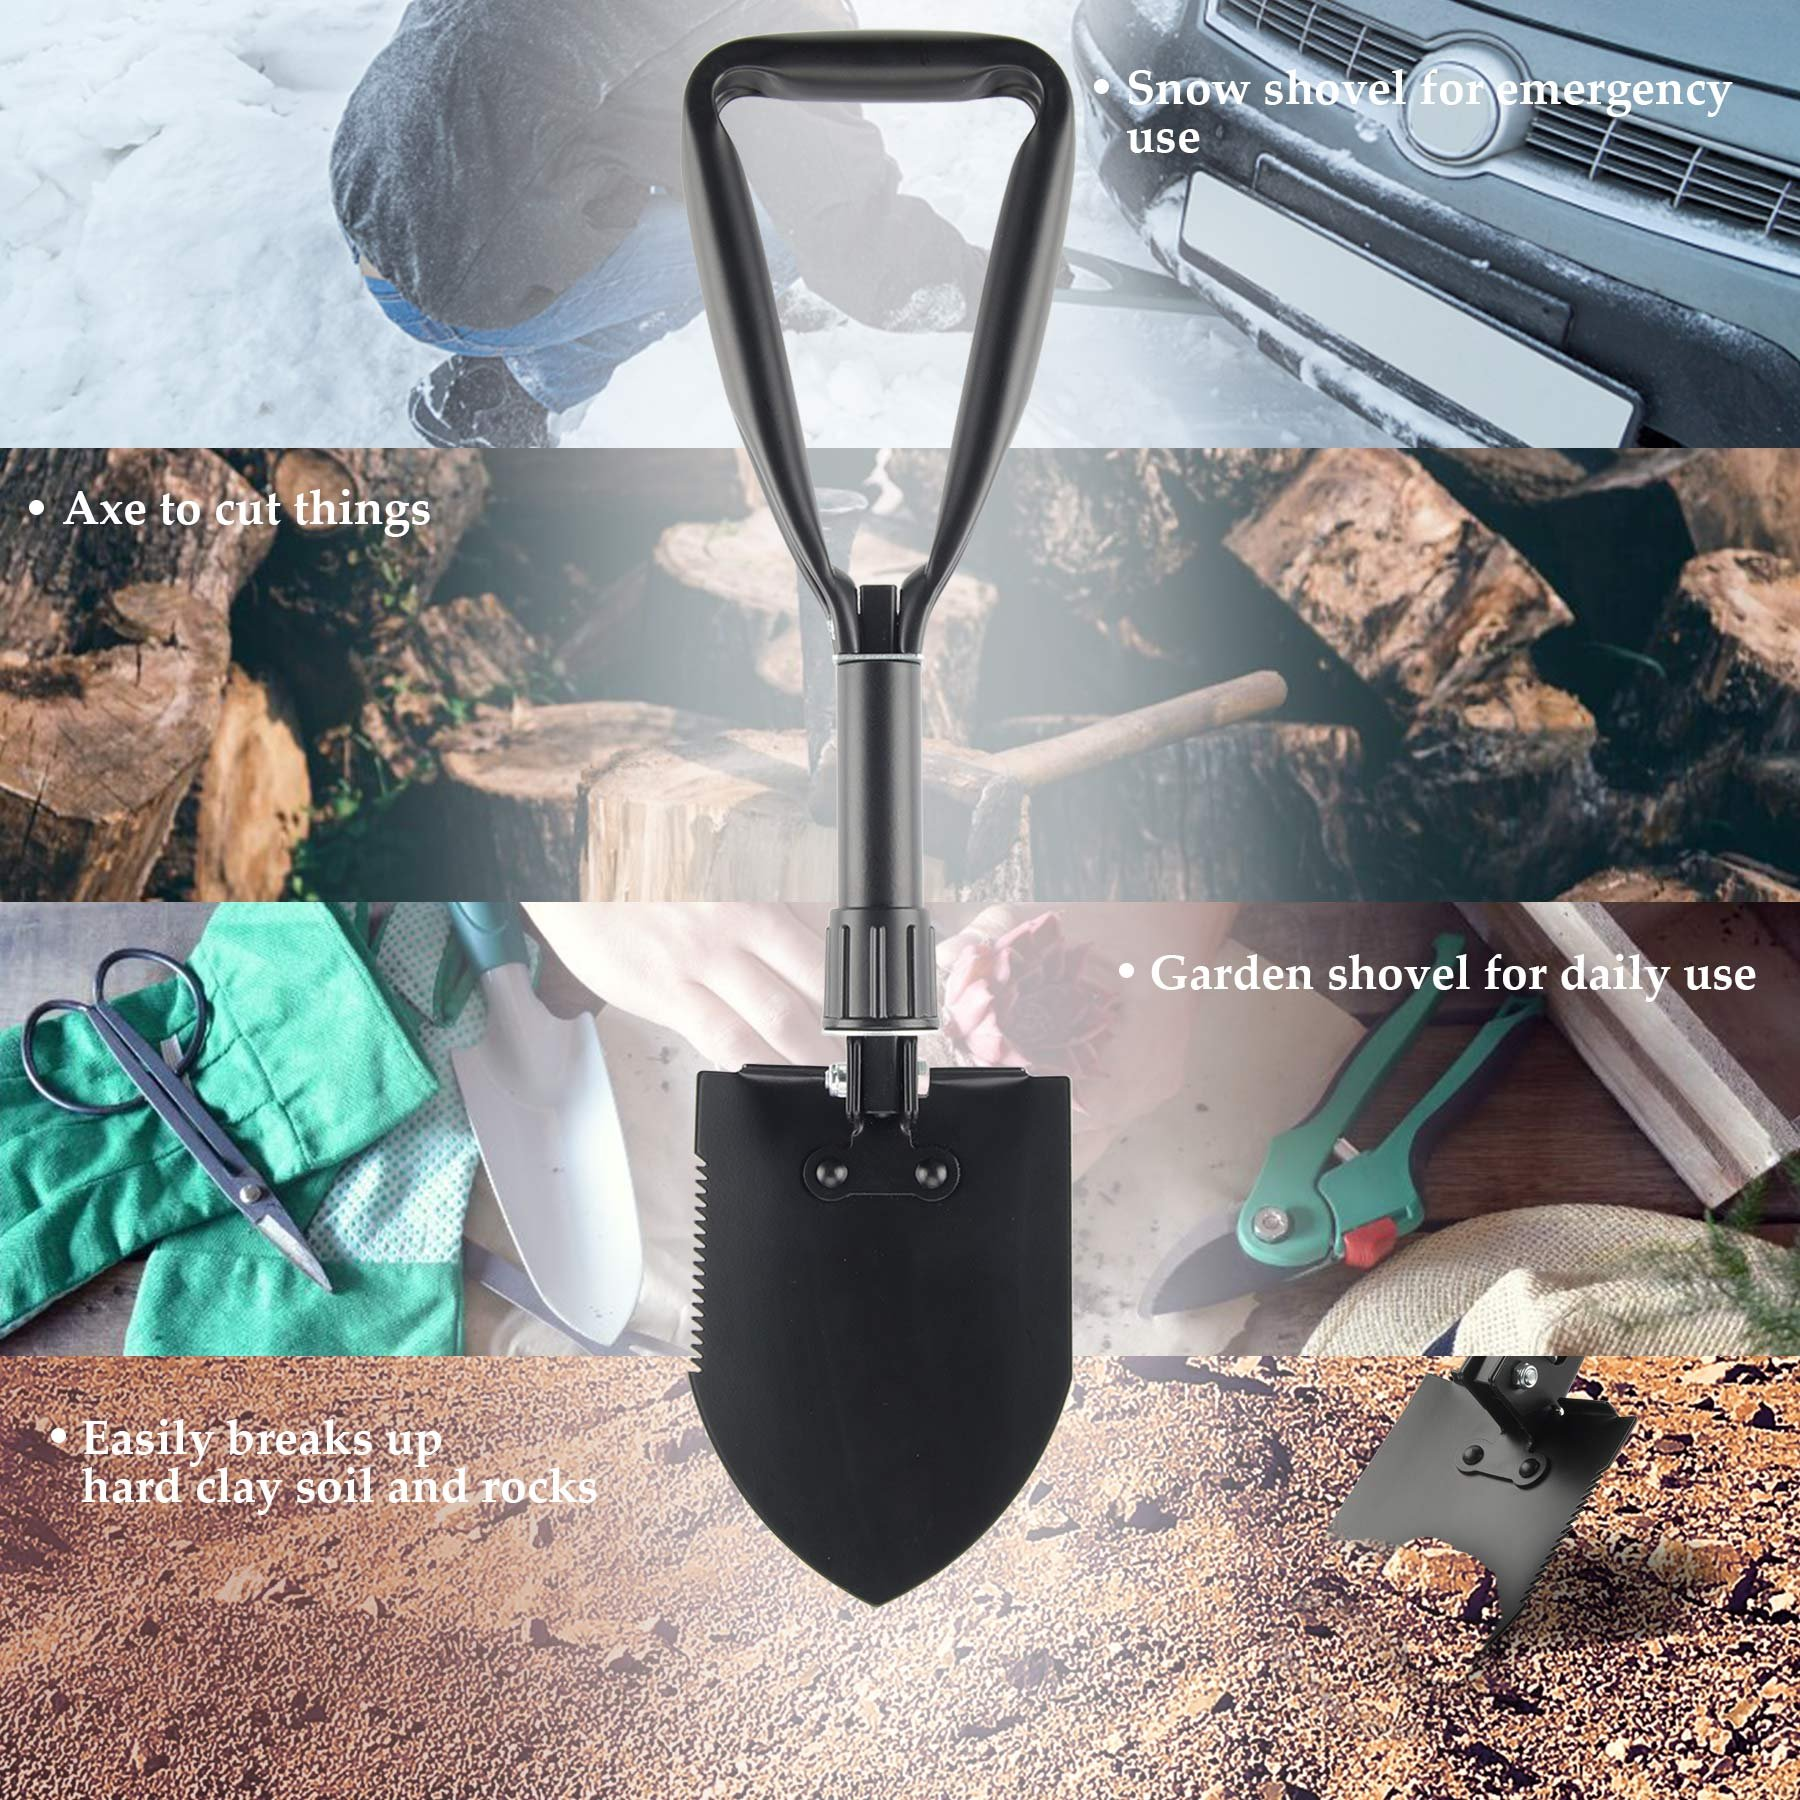 CO-Z Mini Folding Shovel High Carbon Steel Portable Lightweight Outdoor Survival Shovel, Nylon Carry Case, Camping, Hiking, Digging, Backpacking, Car Emergency by CO-Z (Image #6)